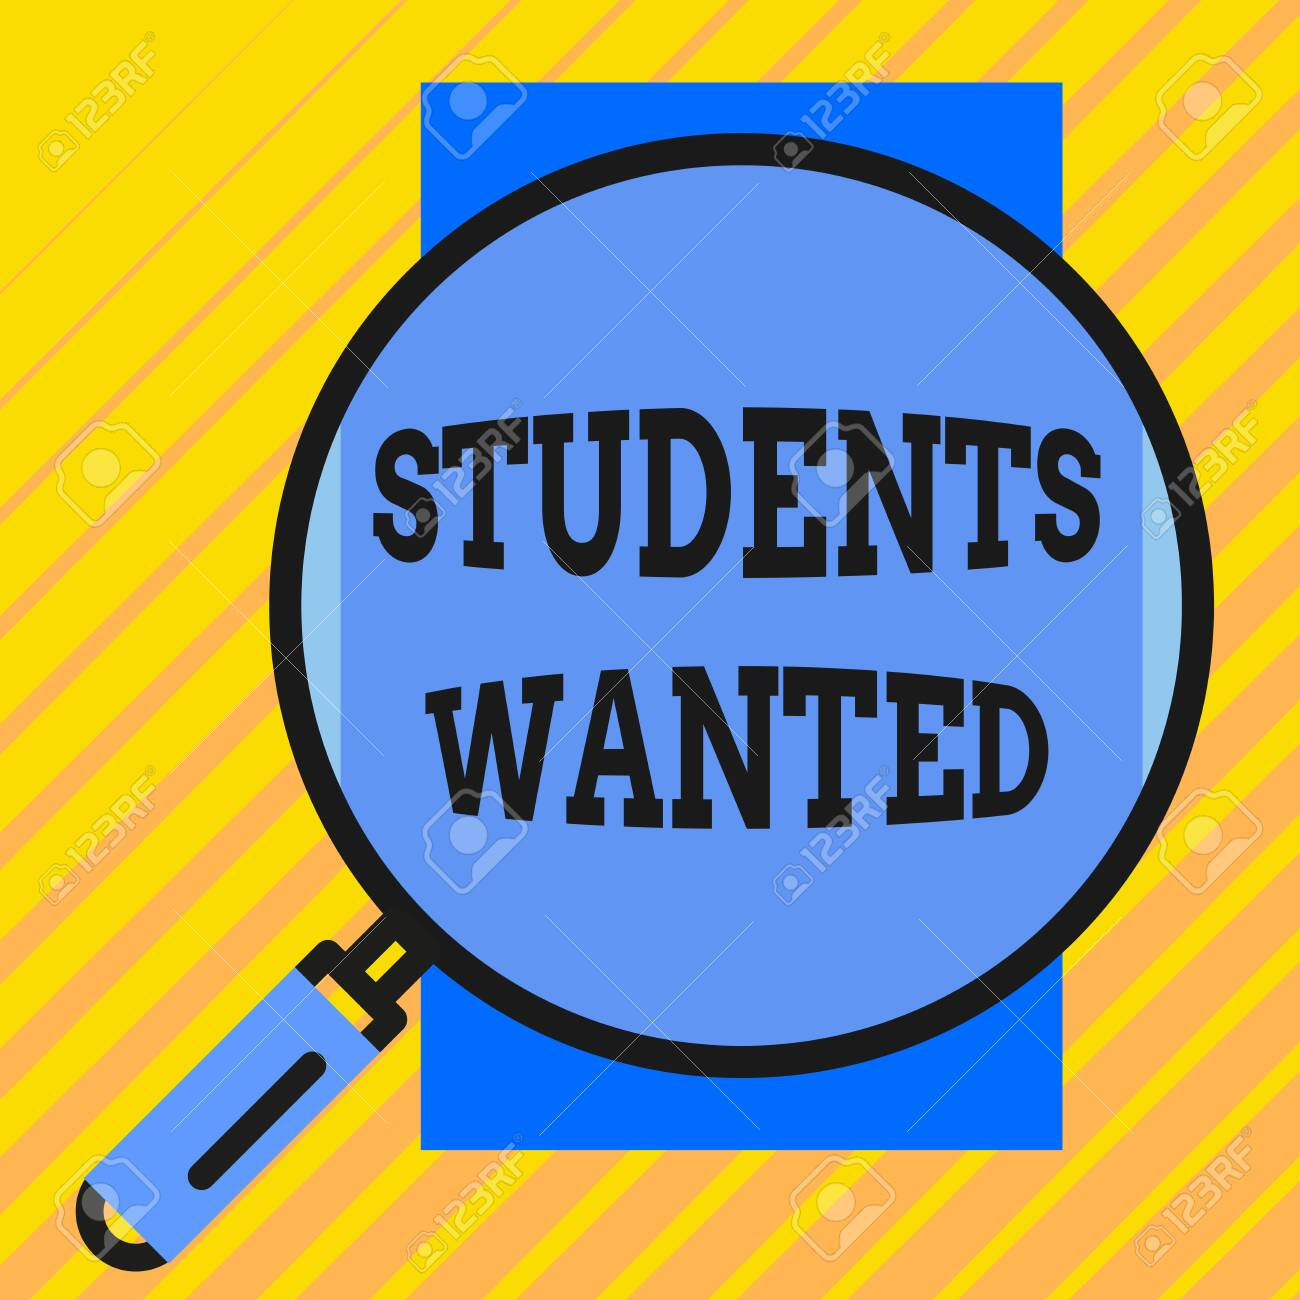 Image result for students wanted!